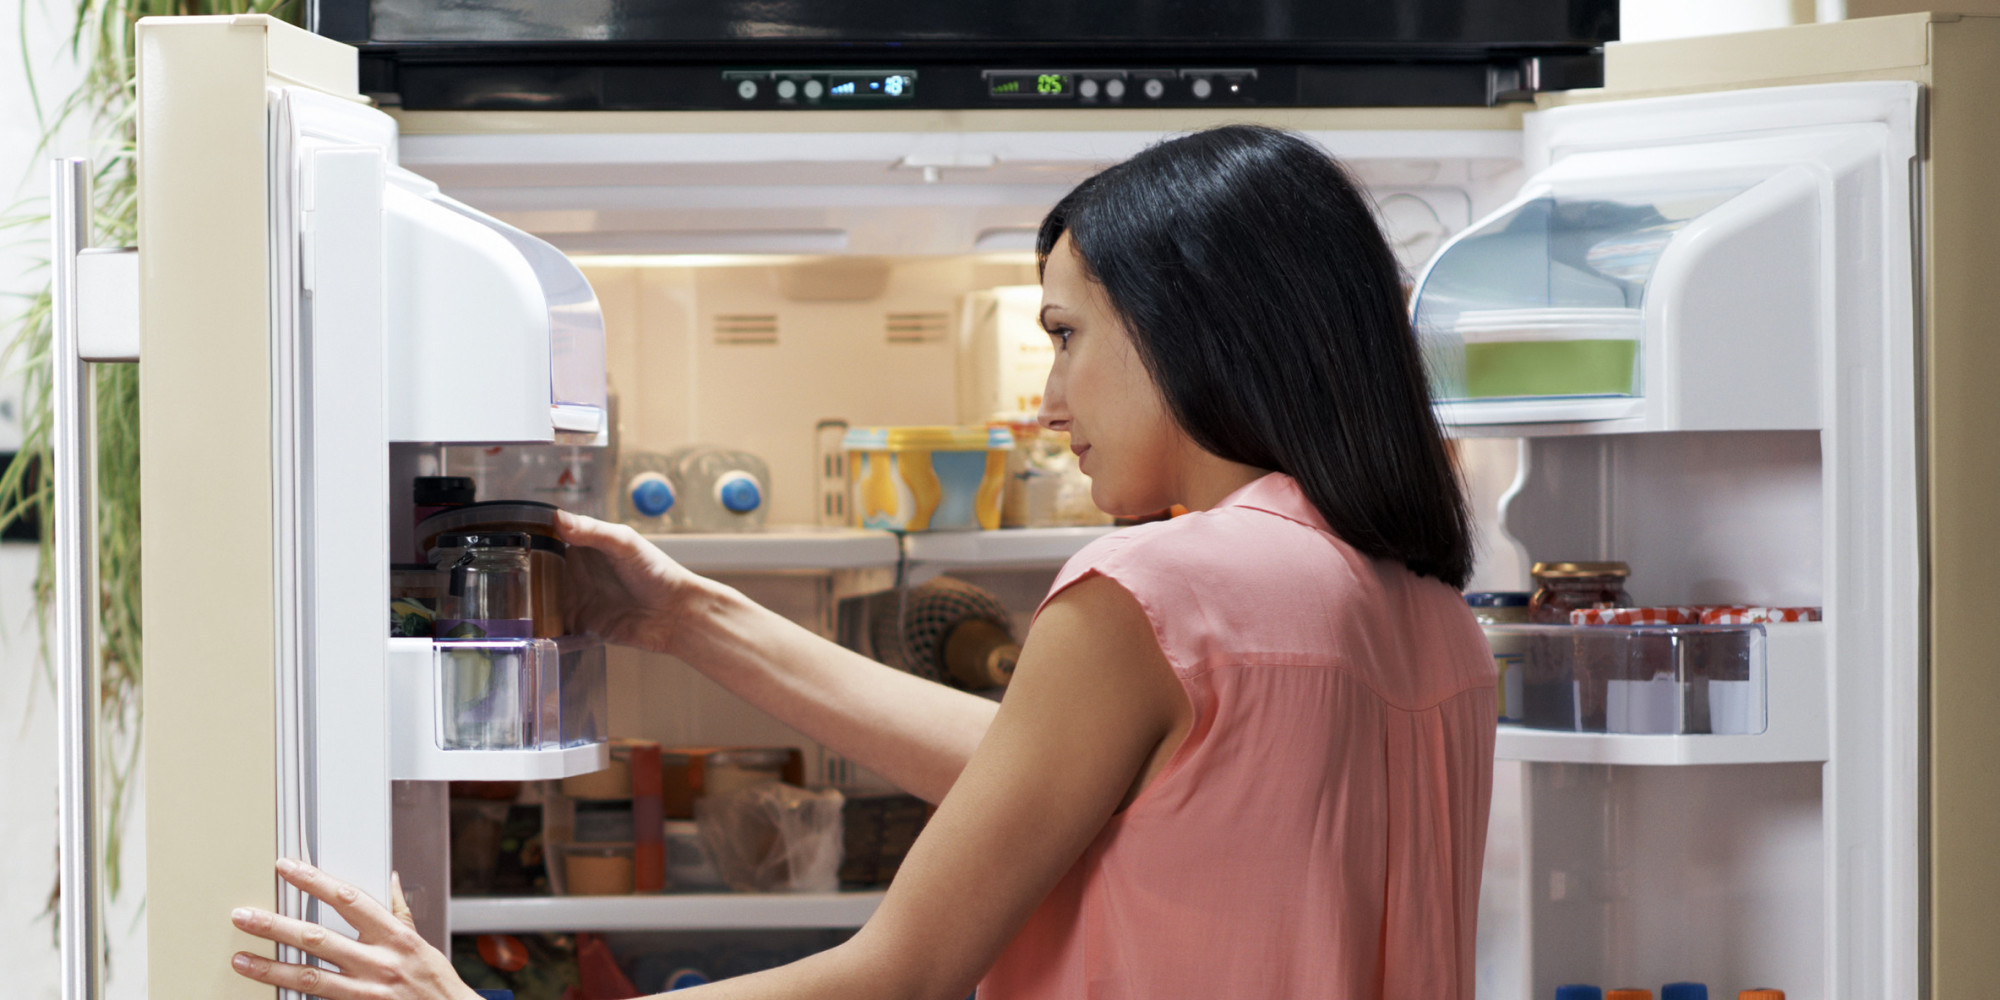 10 skin fixes from the fridge huffpost